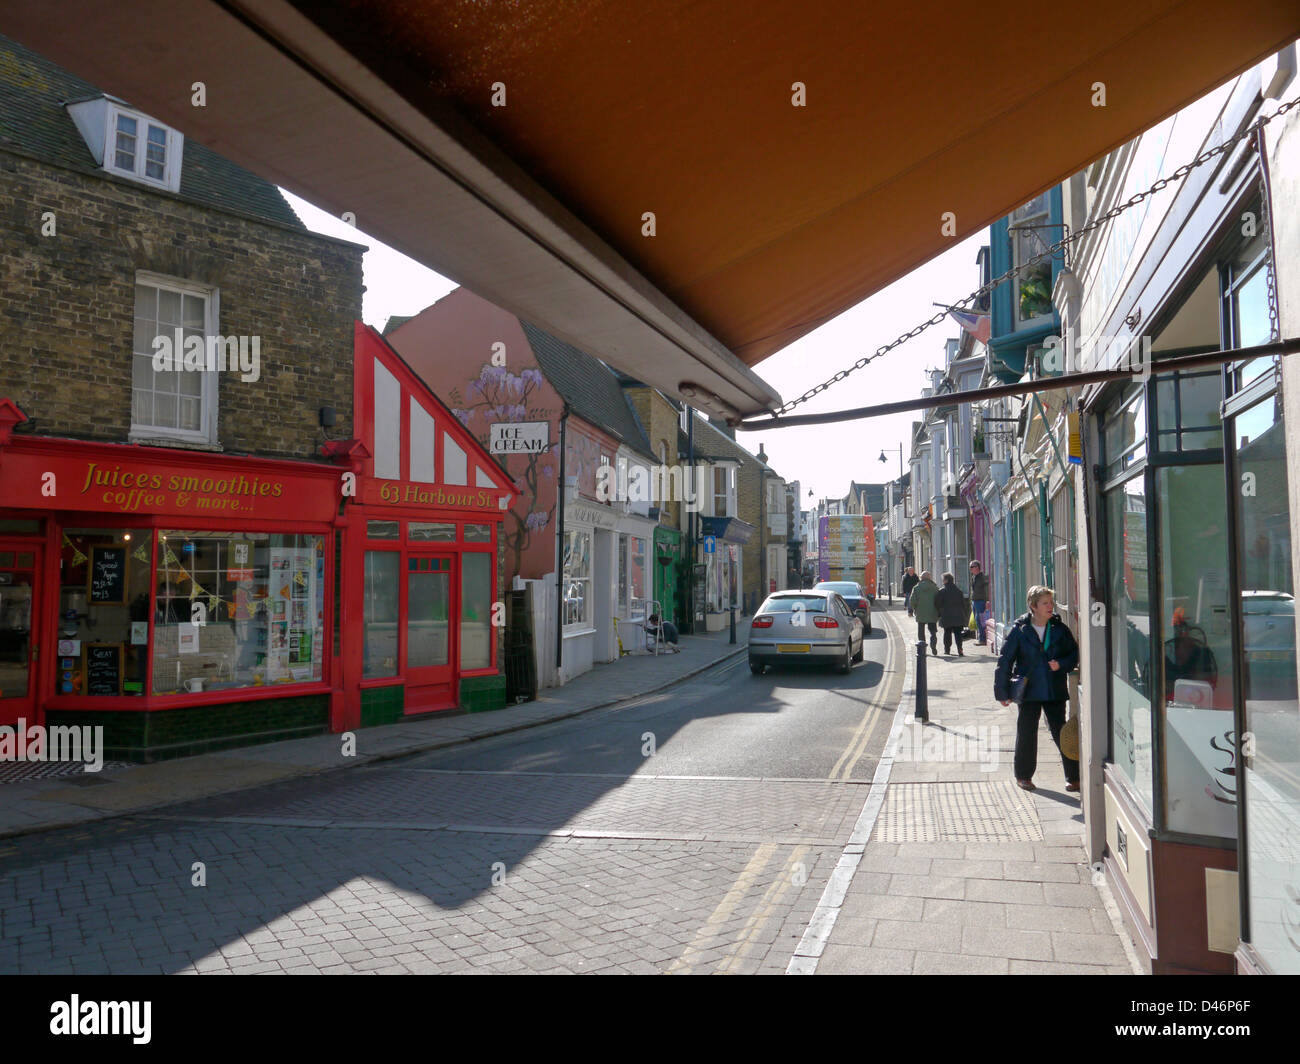 Awnings on Whitstable high street - Stock Image